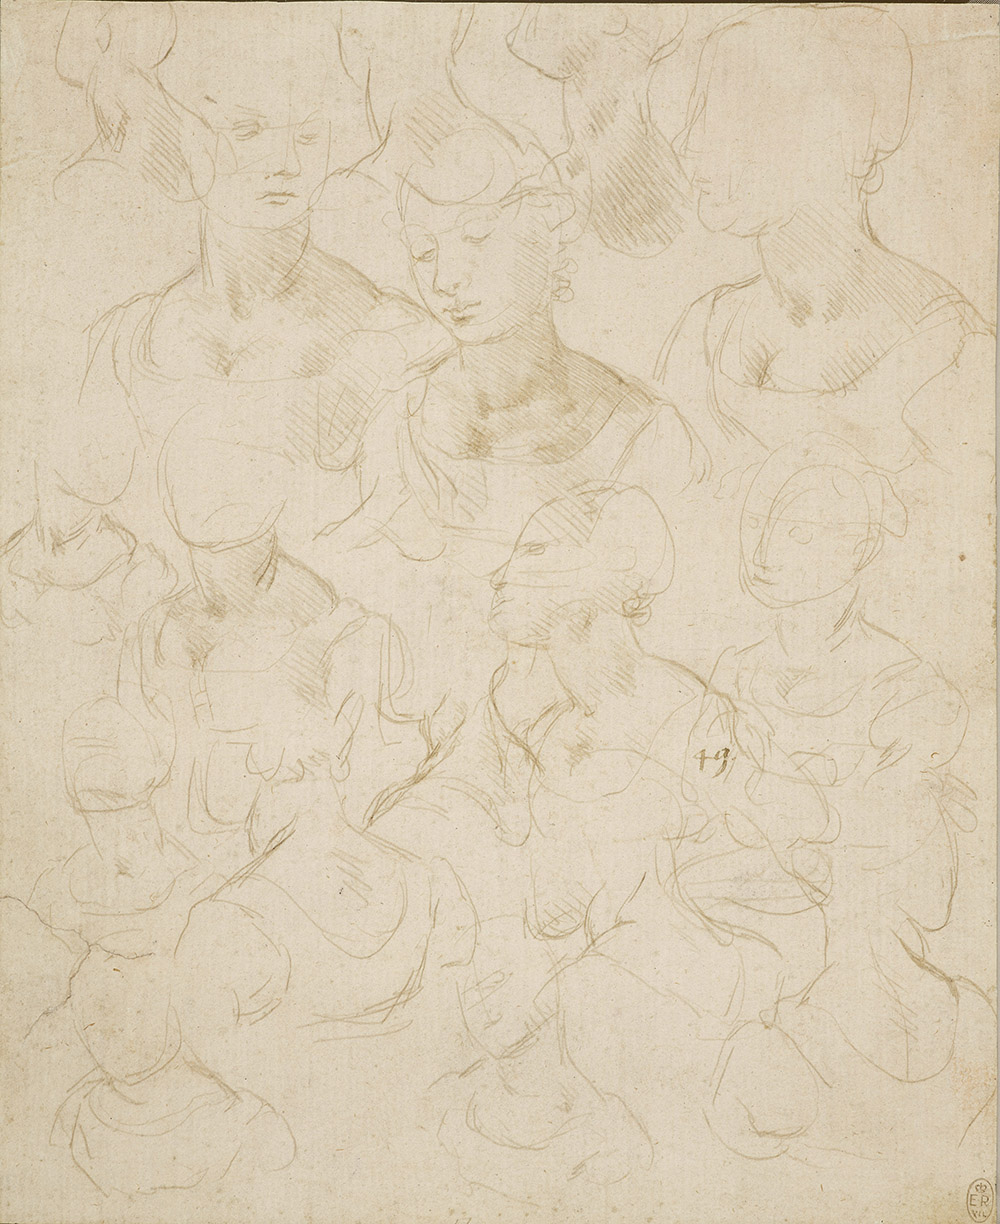 Sketches of a woman, bust length c1490  As court artist to Ludovico Sforza, Leonardo also made designs for architecture and entertainments and painted two of his finest works, The Last Supper (c1494-98; Santa Maria delle Grazie, Milan) and Lady with an Ermine (c1490; Czartoryski Collection, Krakow) – almost certainly a portrait of Ludovico Sforza's mistress Cecilia Gallerani. In that highly original painting, Cecilia and her ermine are caught in a momentary reaction to an event beyond the picture frame. To capture a sense of vivacity and spontaneity Leonardo here made 18 rapid sketches of a model. She is posed in two basic positions, from the front and from the back, as Leonardo experiments with different angles of her head, sometimes showing her arms too. One of the last sketches to be added to the sheet, at the centre of the left edge, is in the pose of Cecilia in the painting.  Manchester Art Gallery, Free to all, 10% off in shop with National Art Pass -